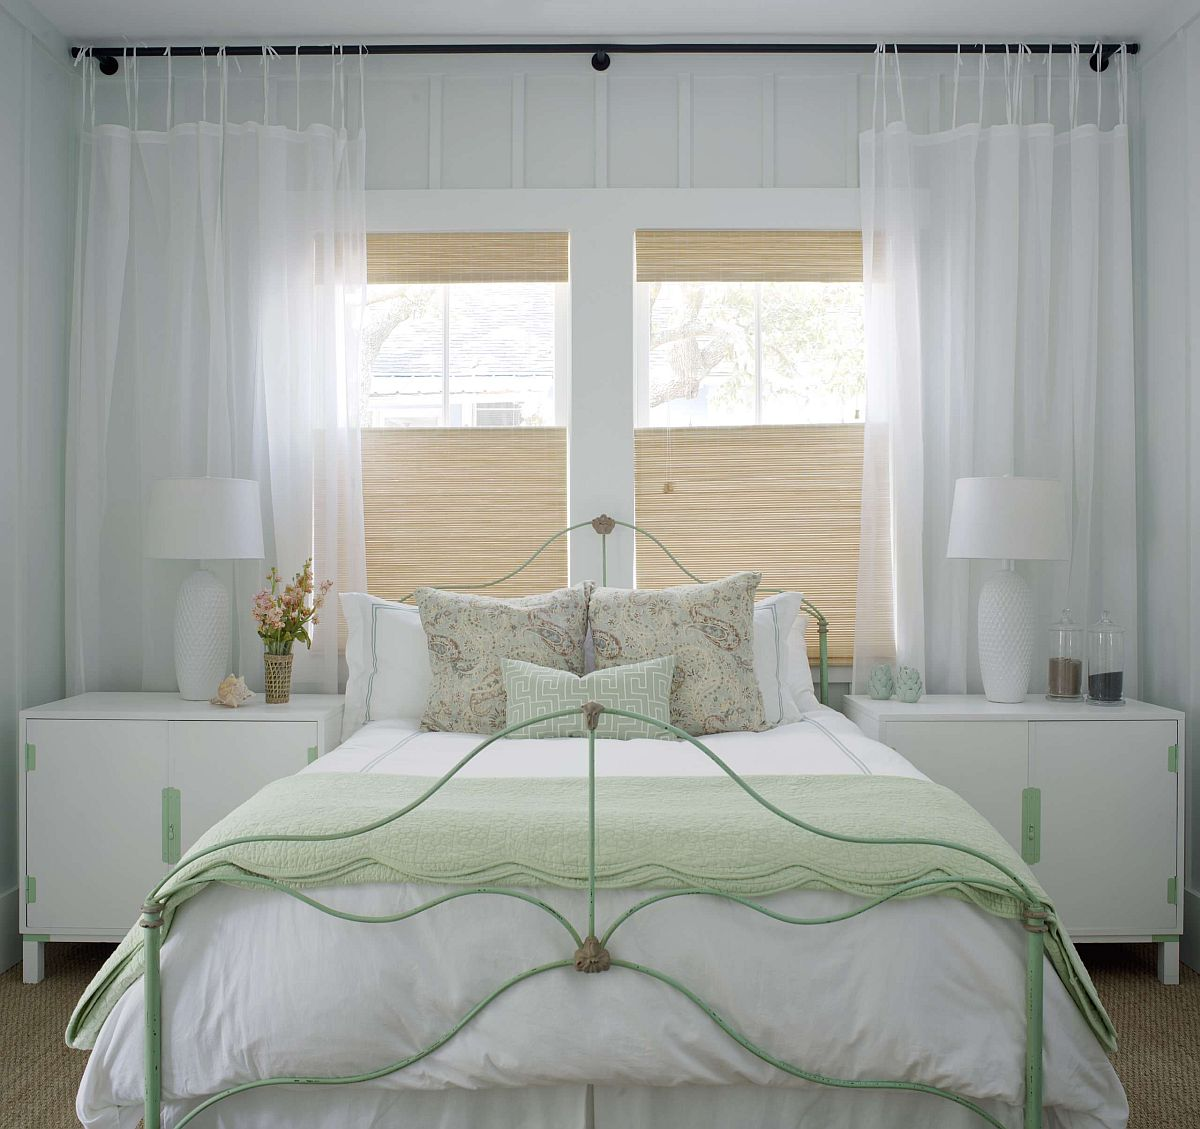 Wrought iron bed frame painted pastel green brings color to the chic bedroom in dreamy white